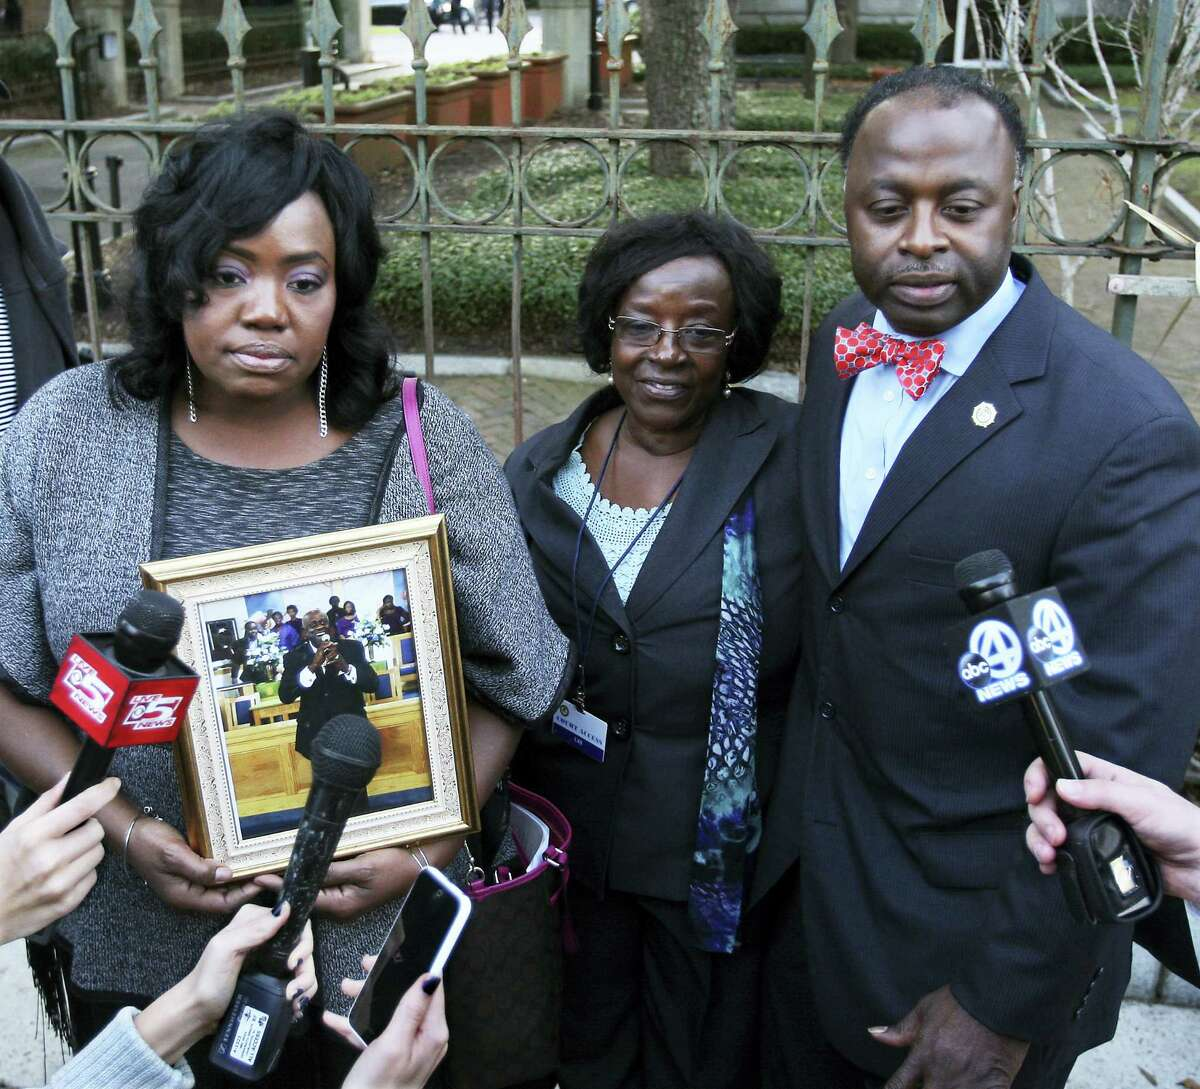 Family of the late Daniel Simmons Sr., Rose Simmons, left, daughter, former wife Annie Simmons and son Daniel L.Simmons,Jr. speak to the media after the death sentence hearing for Dylann Roof on Jan. 11, 2017 in Charleston, S.C.